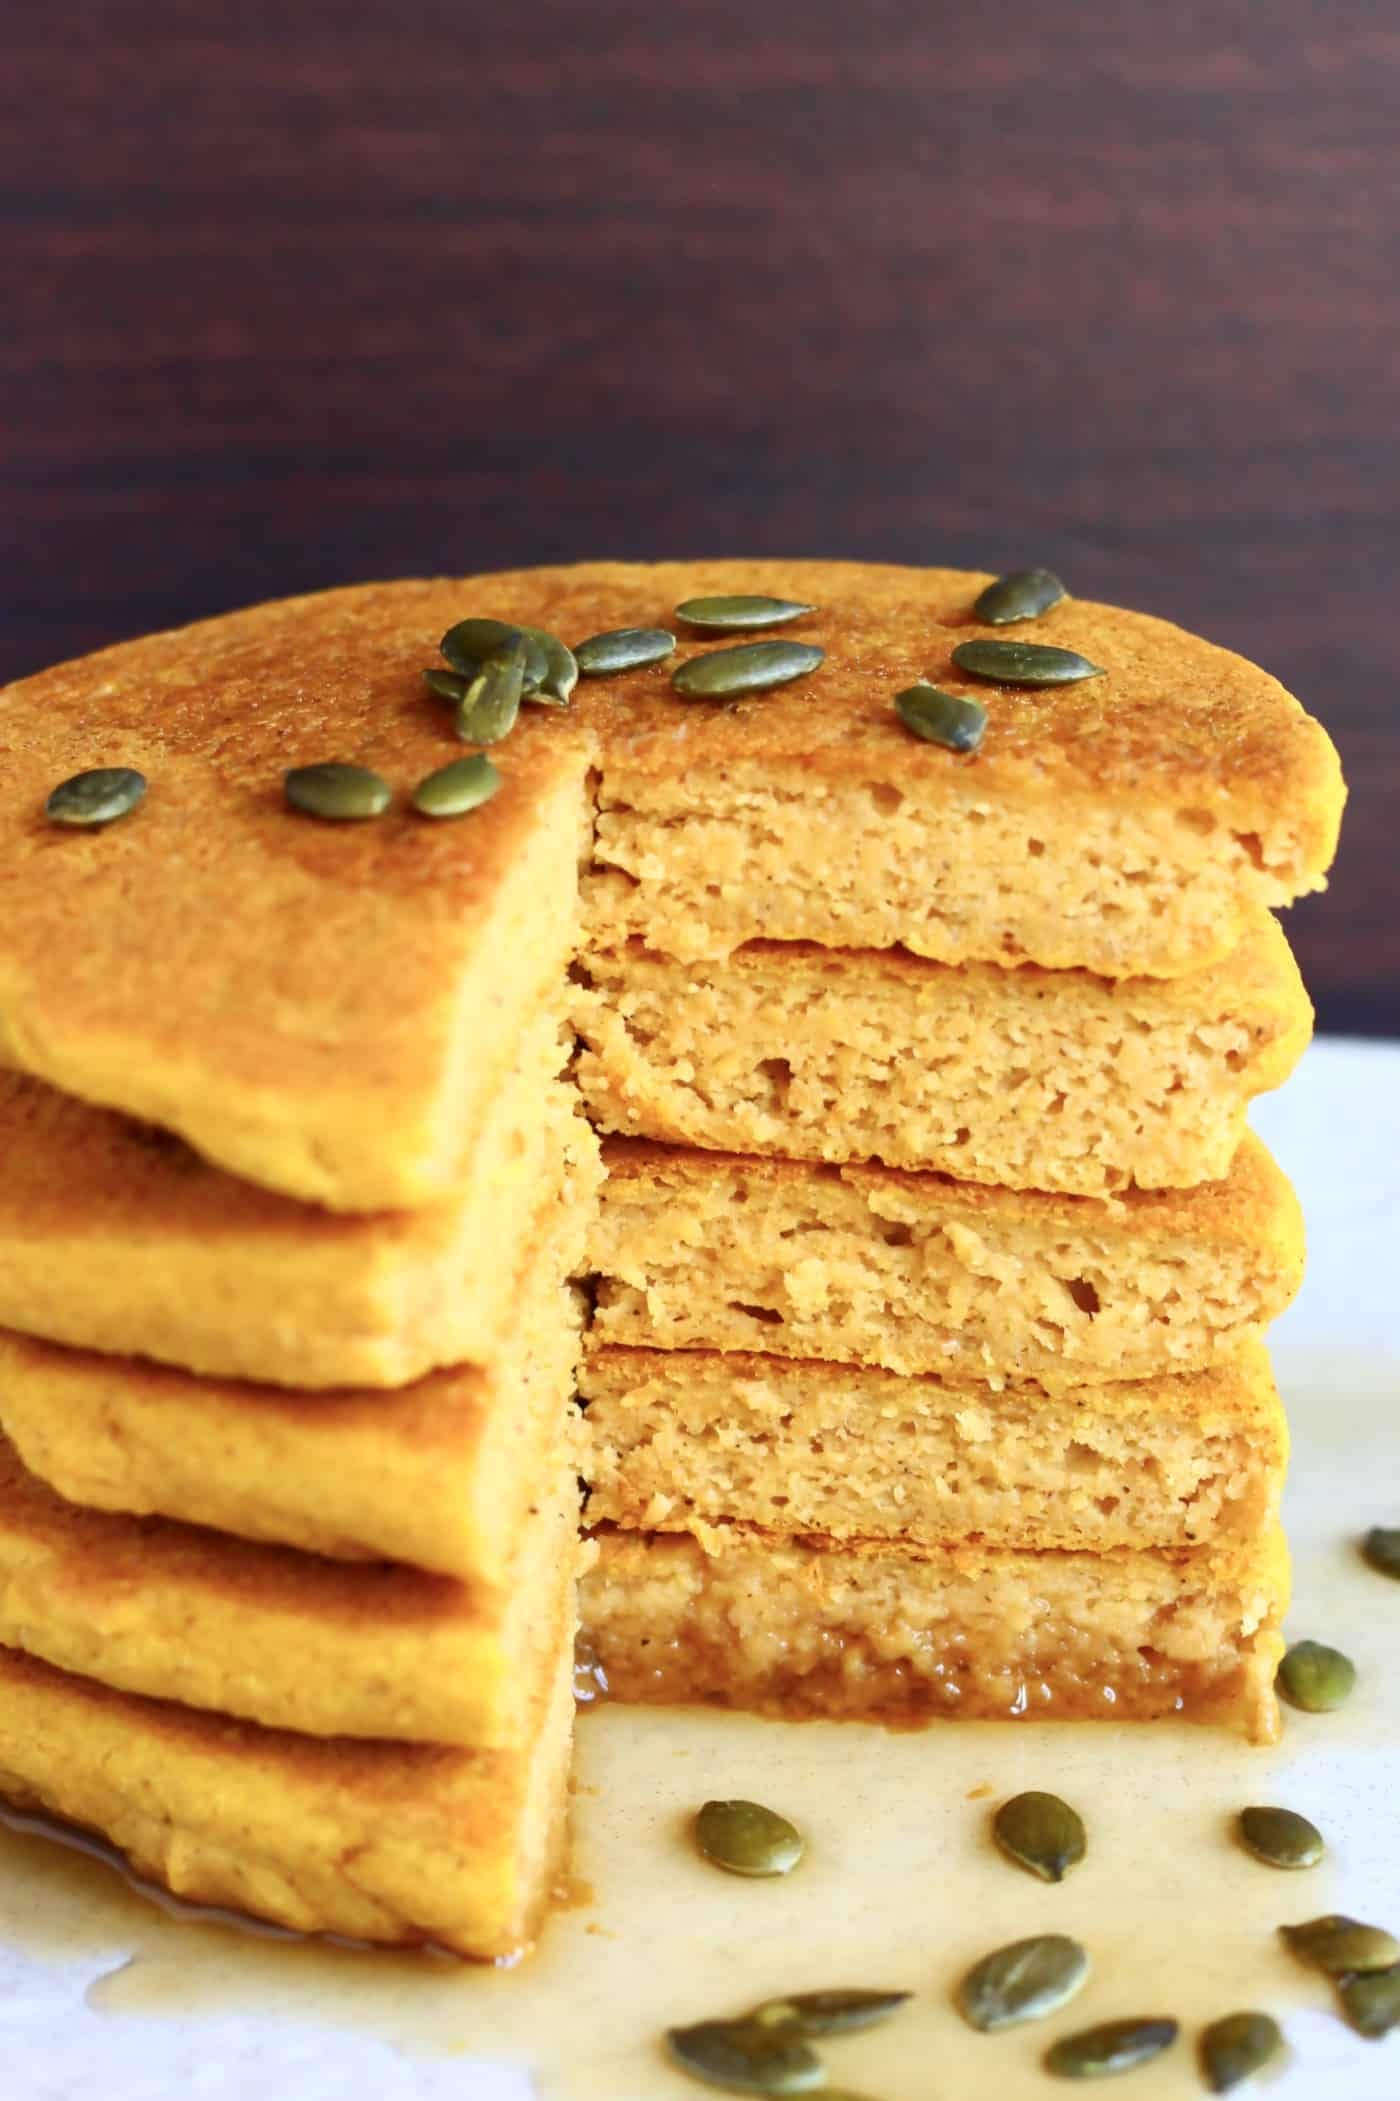 A stack of sliced gluten-free vegan pumpkin pancakes on a plate